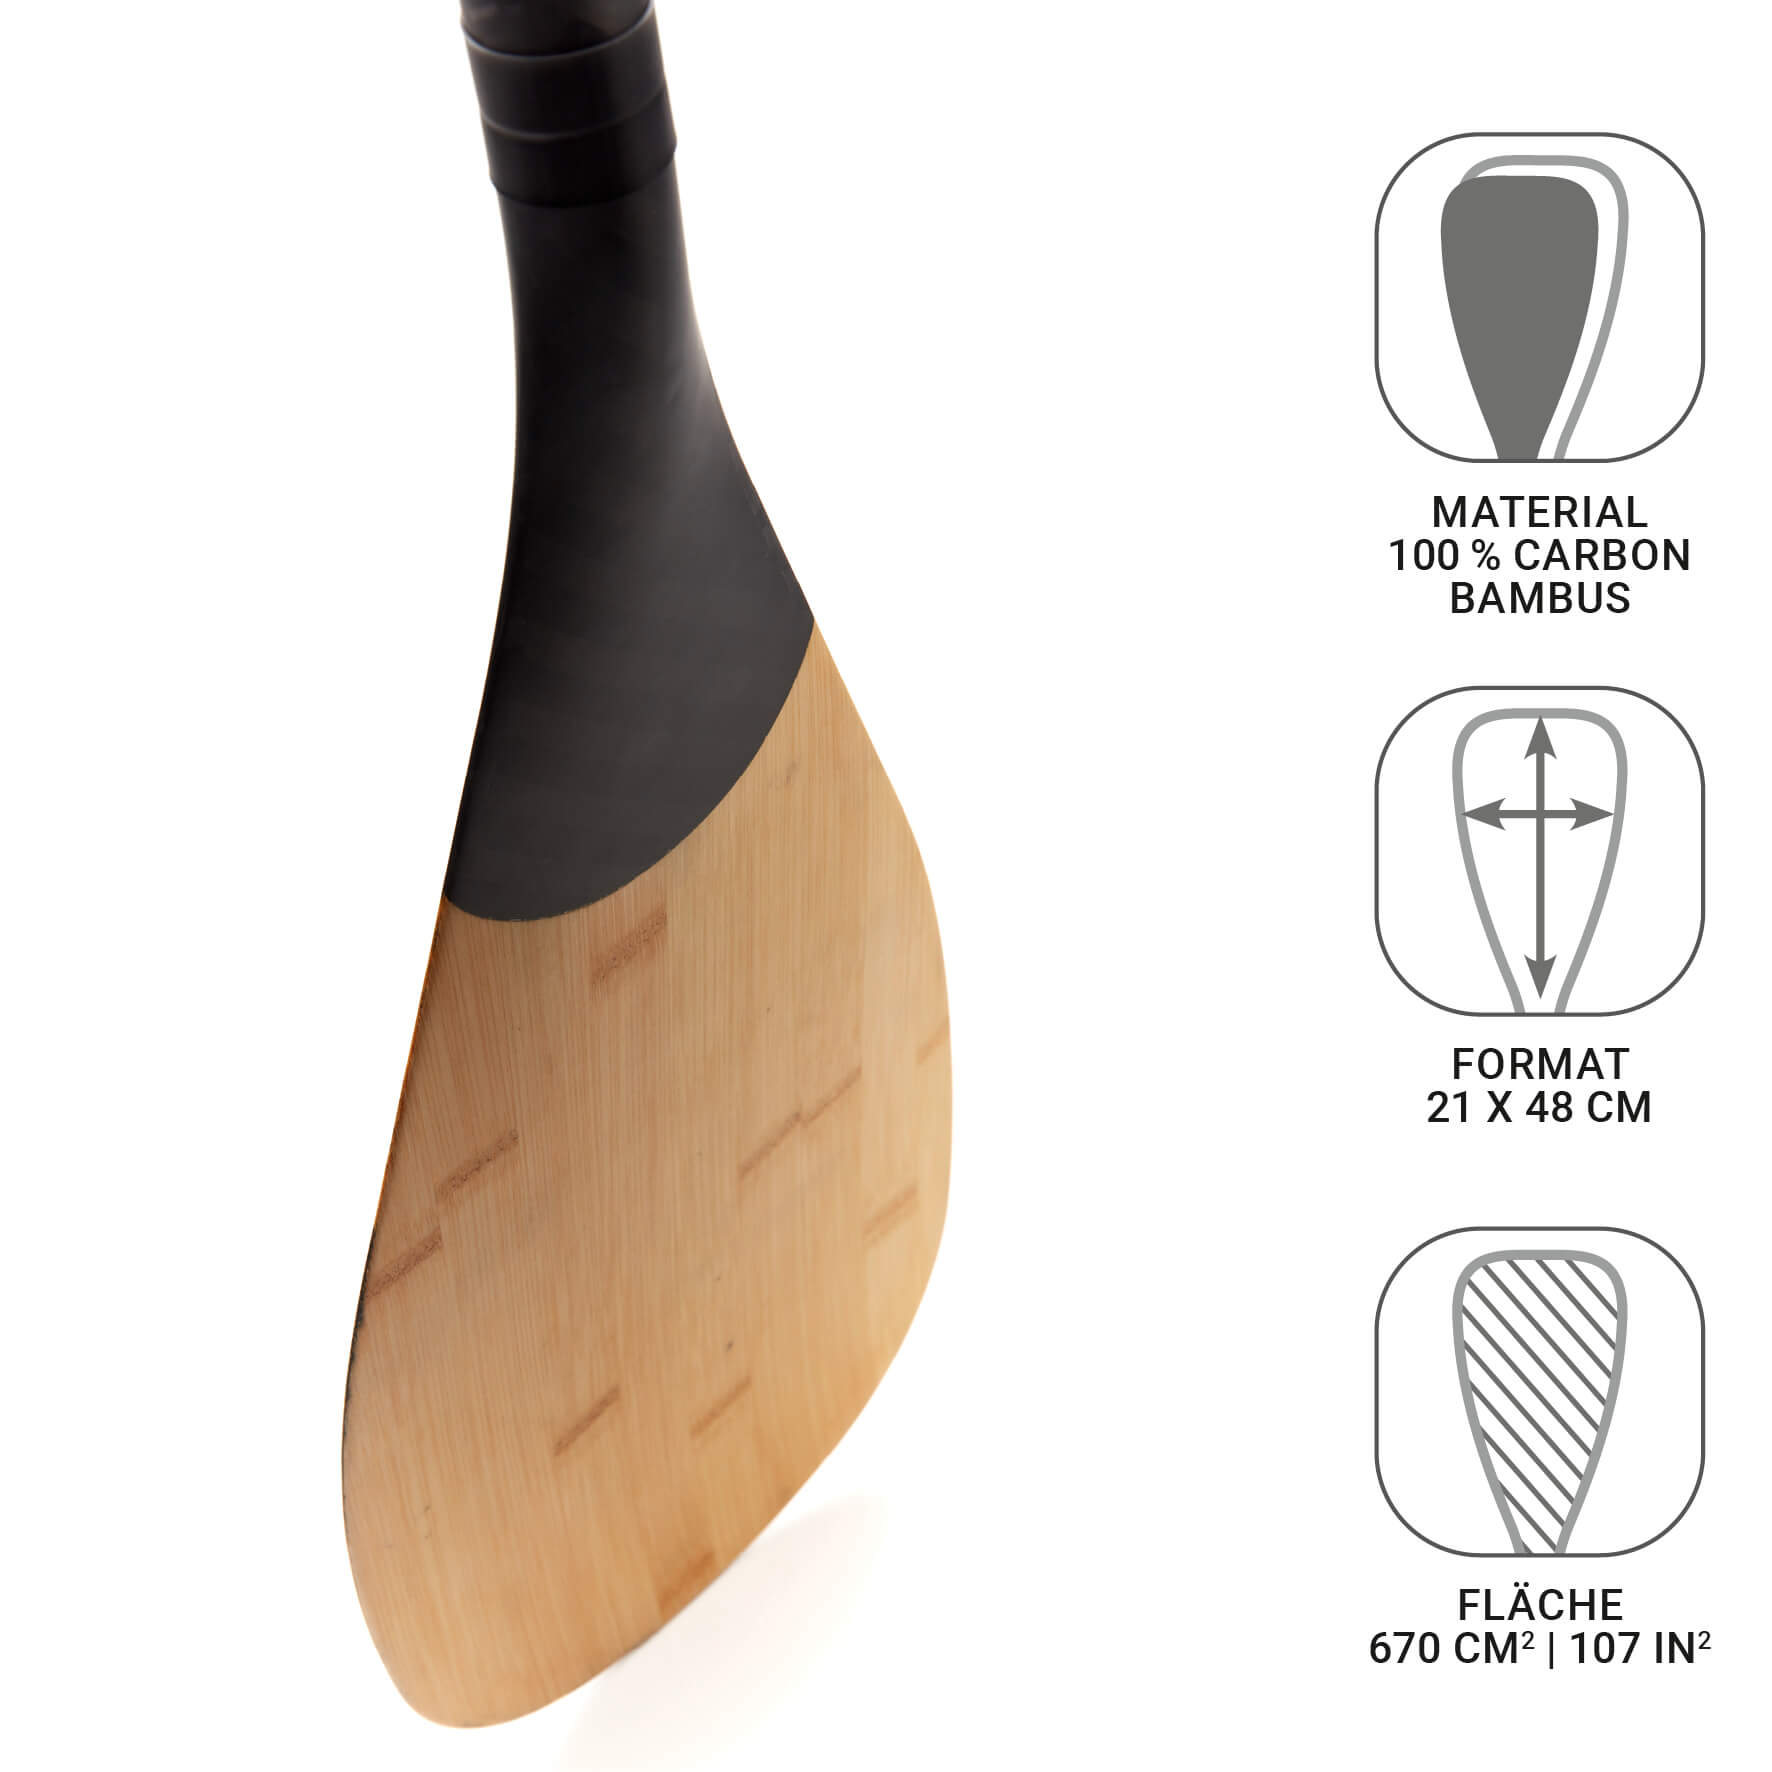 BAMBOO 100% Carbon Touring SUP Paddel 3-Teilig